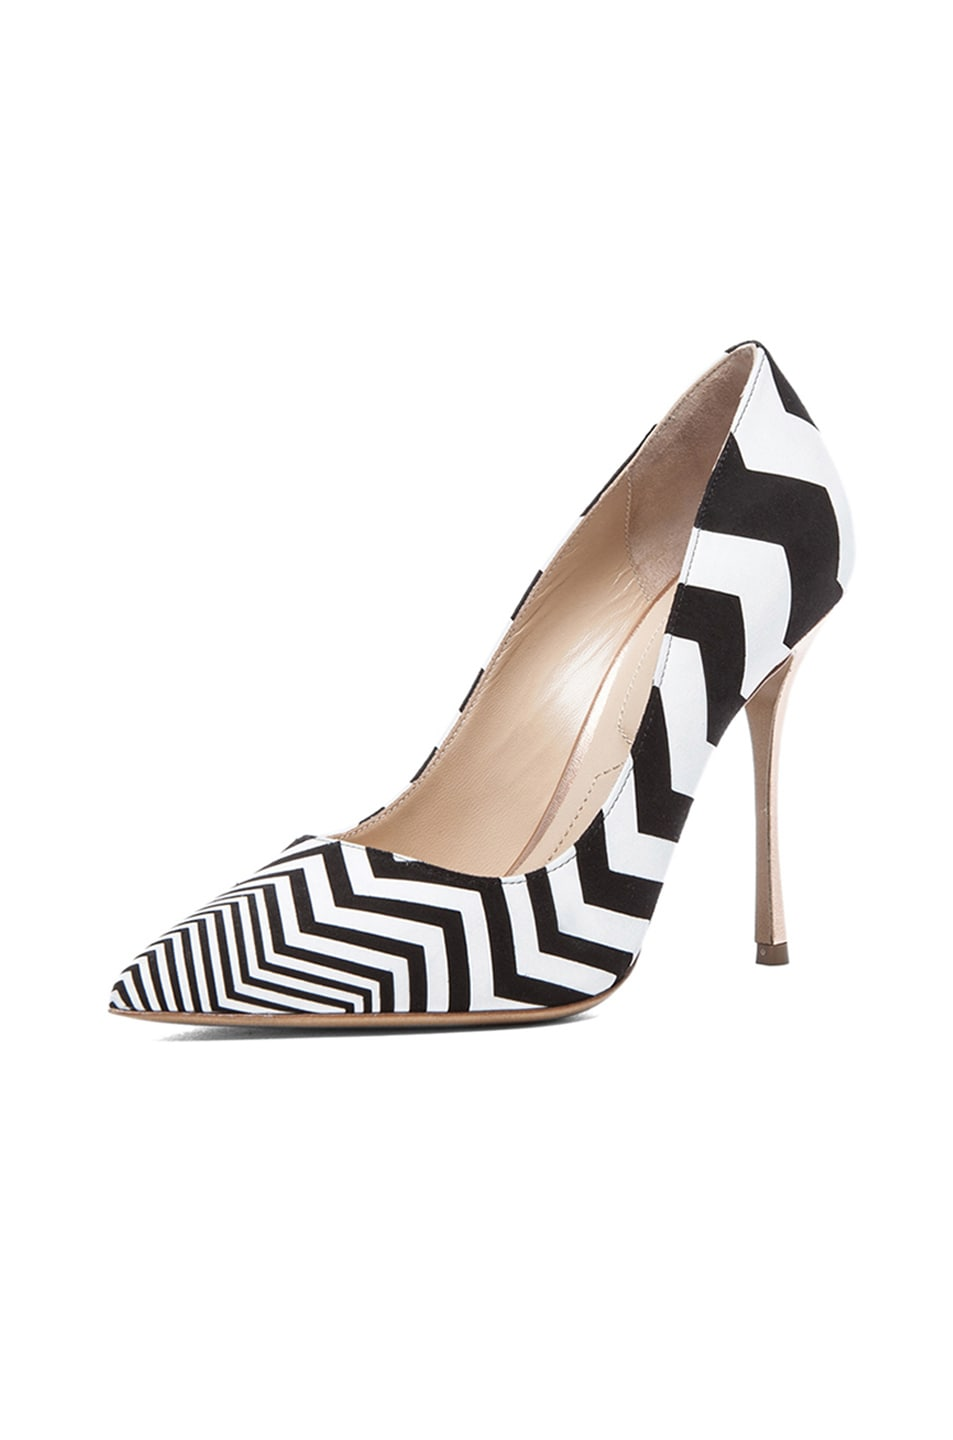 Image 2 of Nicholas Kirkwood Zig Zag Printed Suede Pumps in Black & White